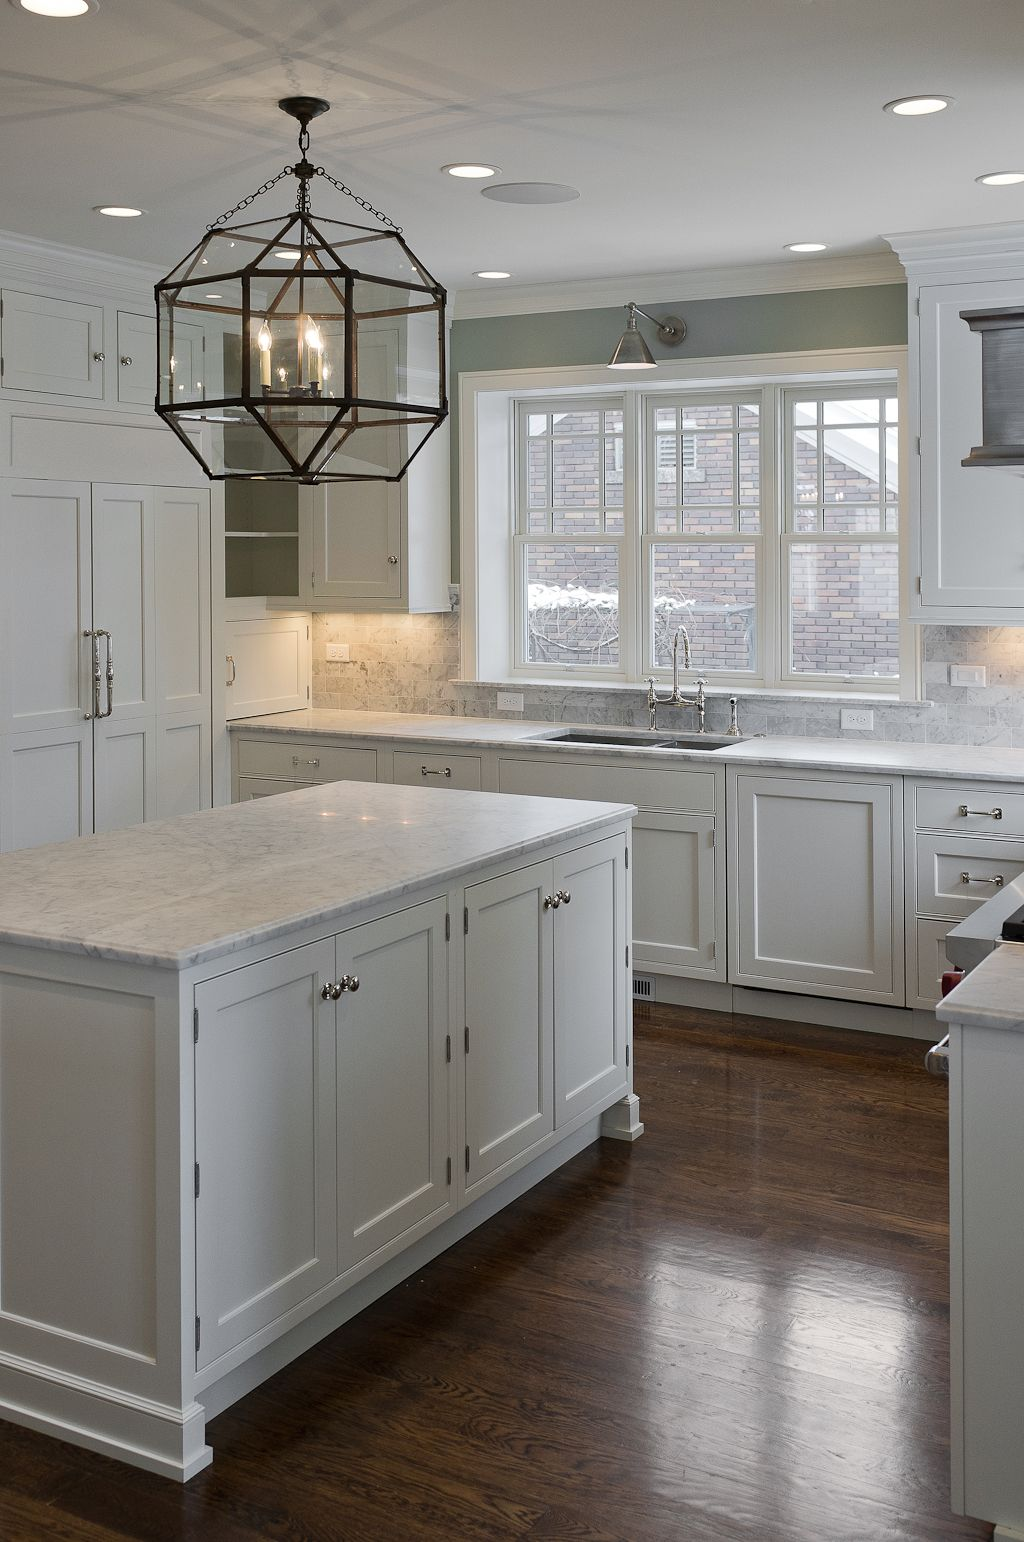 30 Spectacular White Kitchens With Dark Wood Floors   kitchen dining     Dark floors white cabinets  white granite  silver knobs and gray paint  wall  Beautiful kitchen window  I don t love the pendant light though   whitekitchen